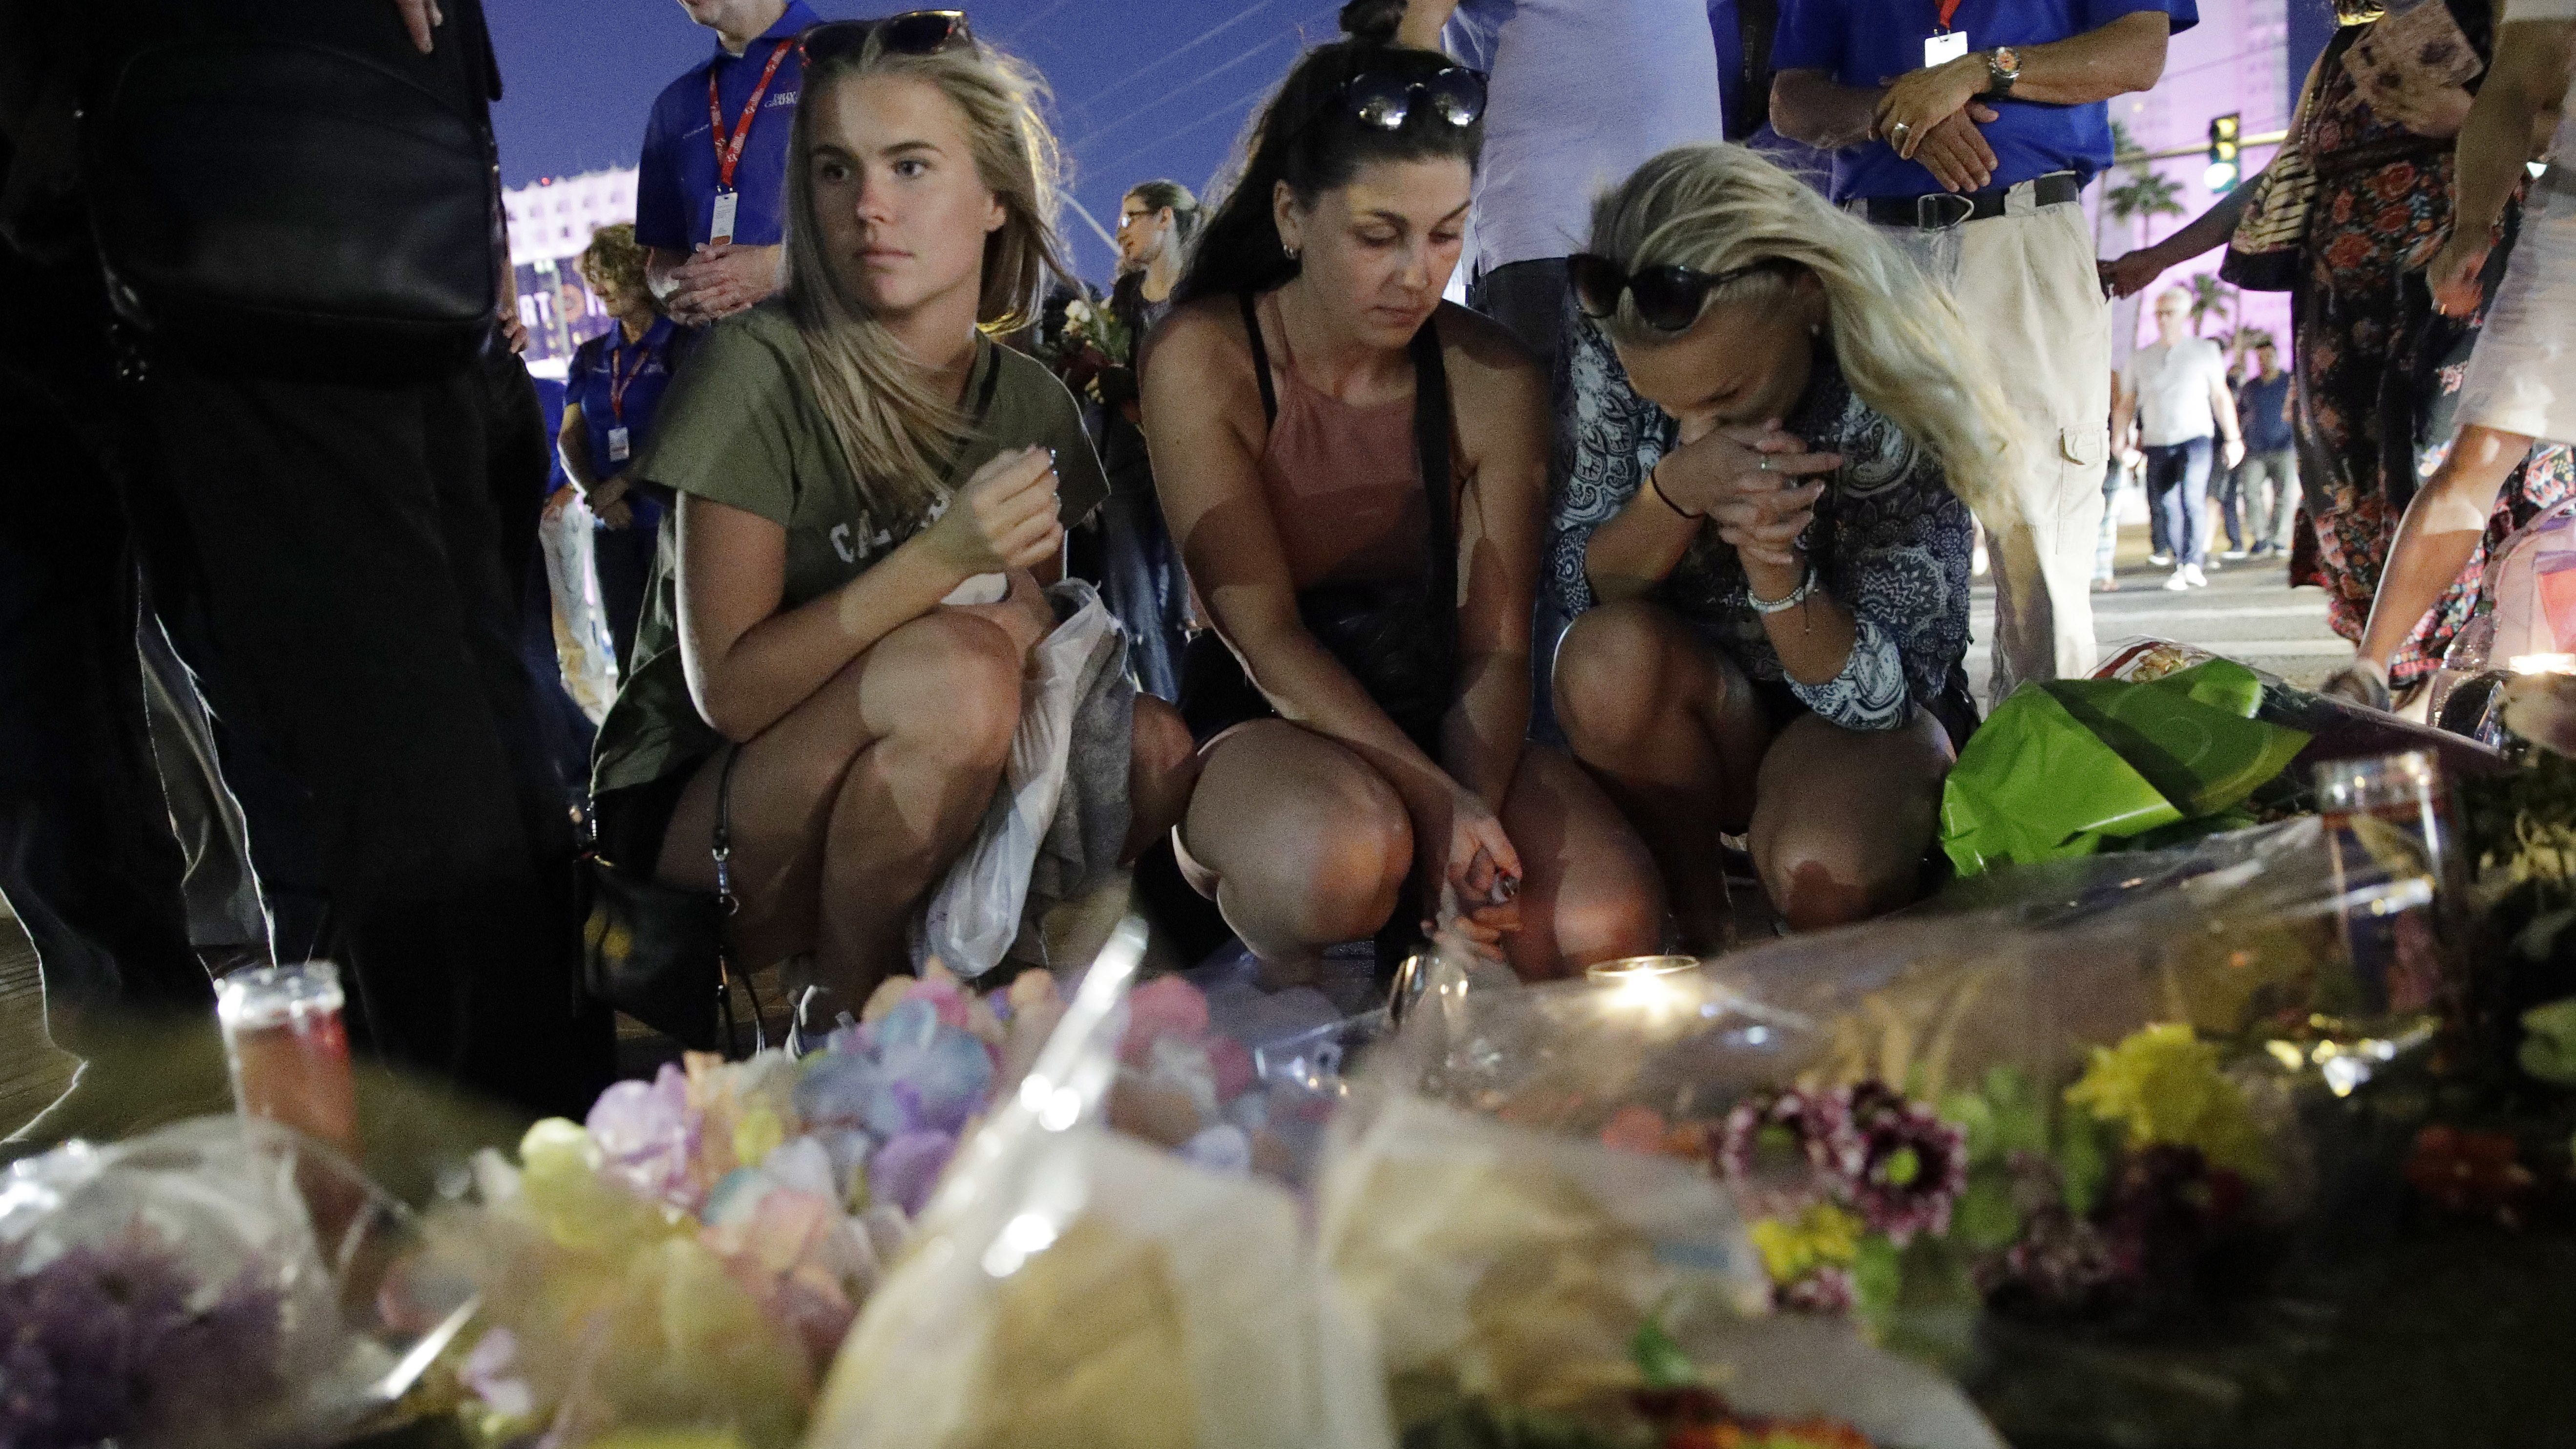 People pause at a memorial set up for victims of a mass shooting in Las Vegas, Nev., on Tuesday, Oct. 3, 2017. A gunman opened fire on an outdoor music concert on Sunday. It was the deadliest mass shooting in modern U.S. history, with dozens of people killed and hundreds injured, some by gunfire, some during the chaotic escape. (AP Photo/John Locher)